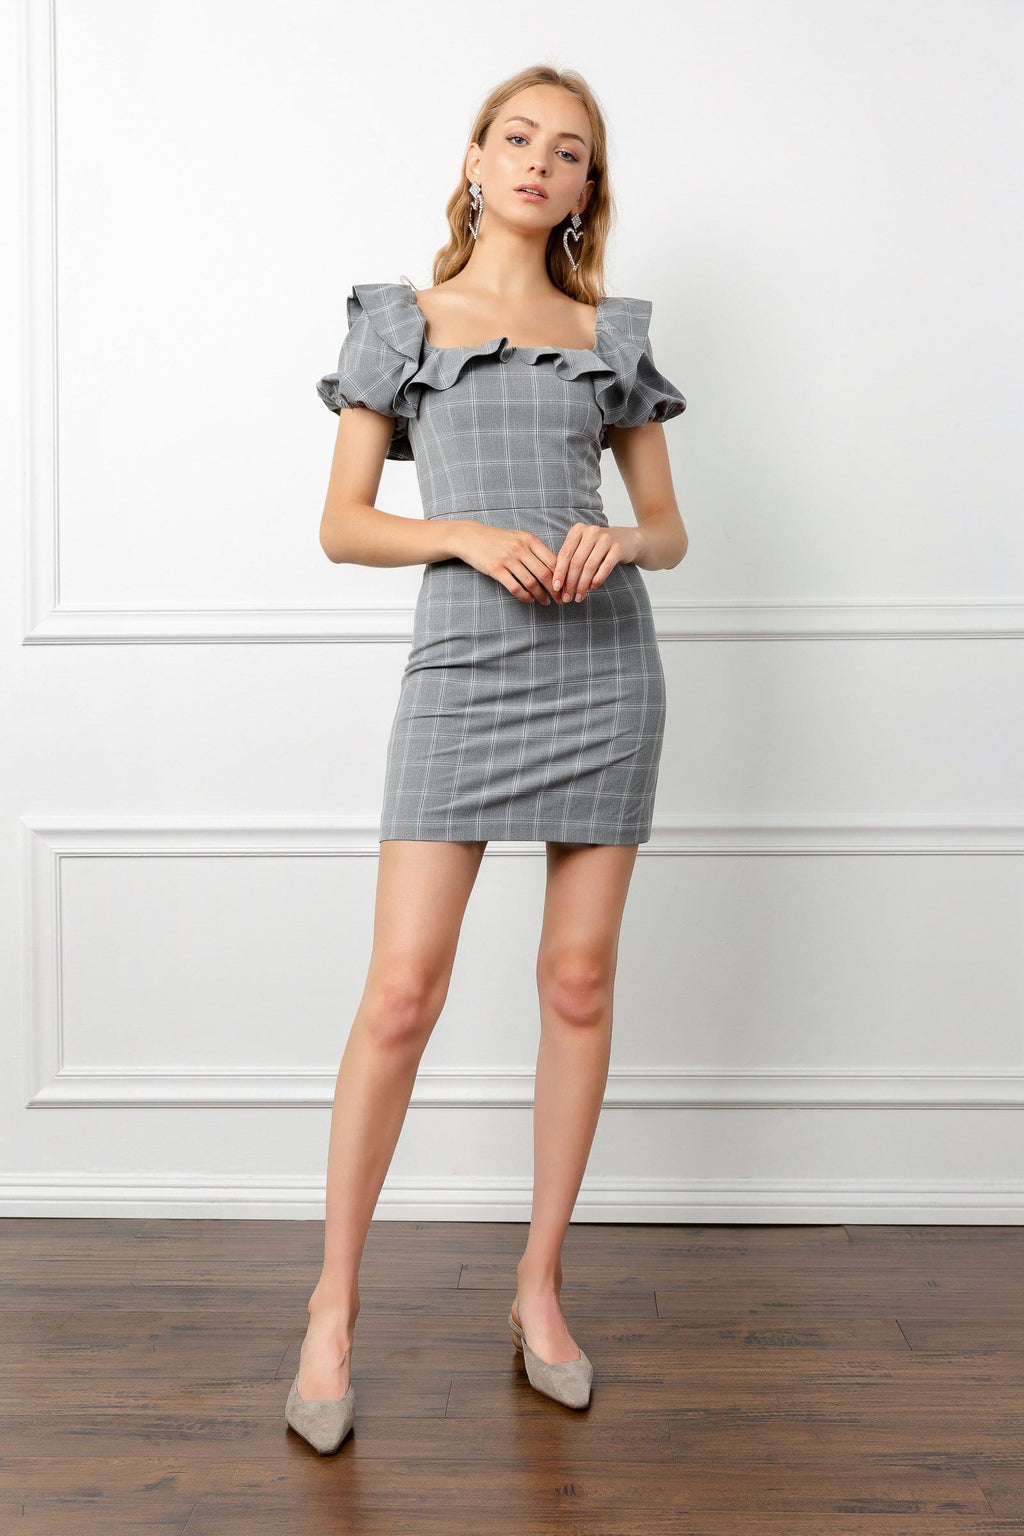 Grey Plaid Mini Dress with Square neckline and puff sleeves | J.ING women's apparel